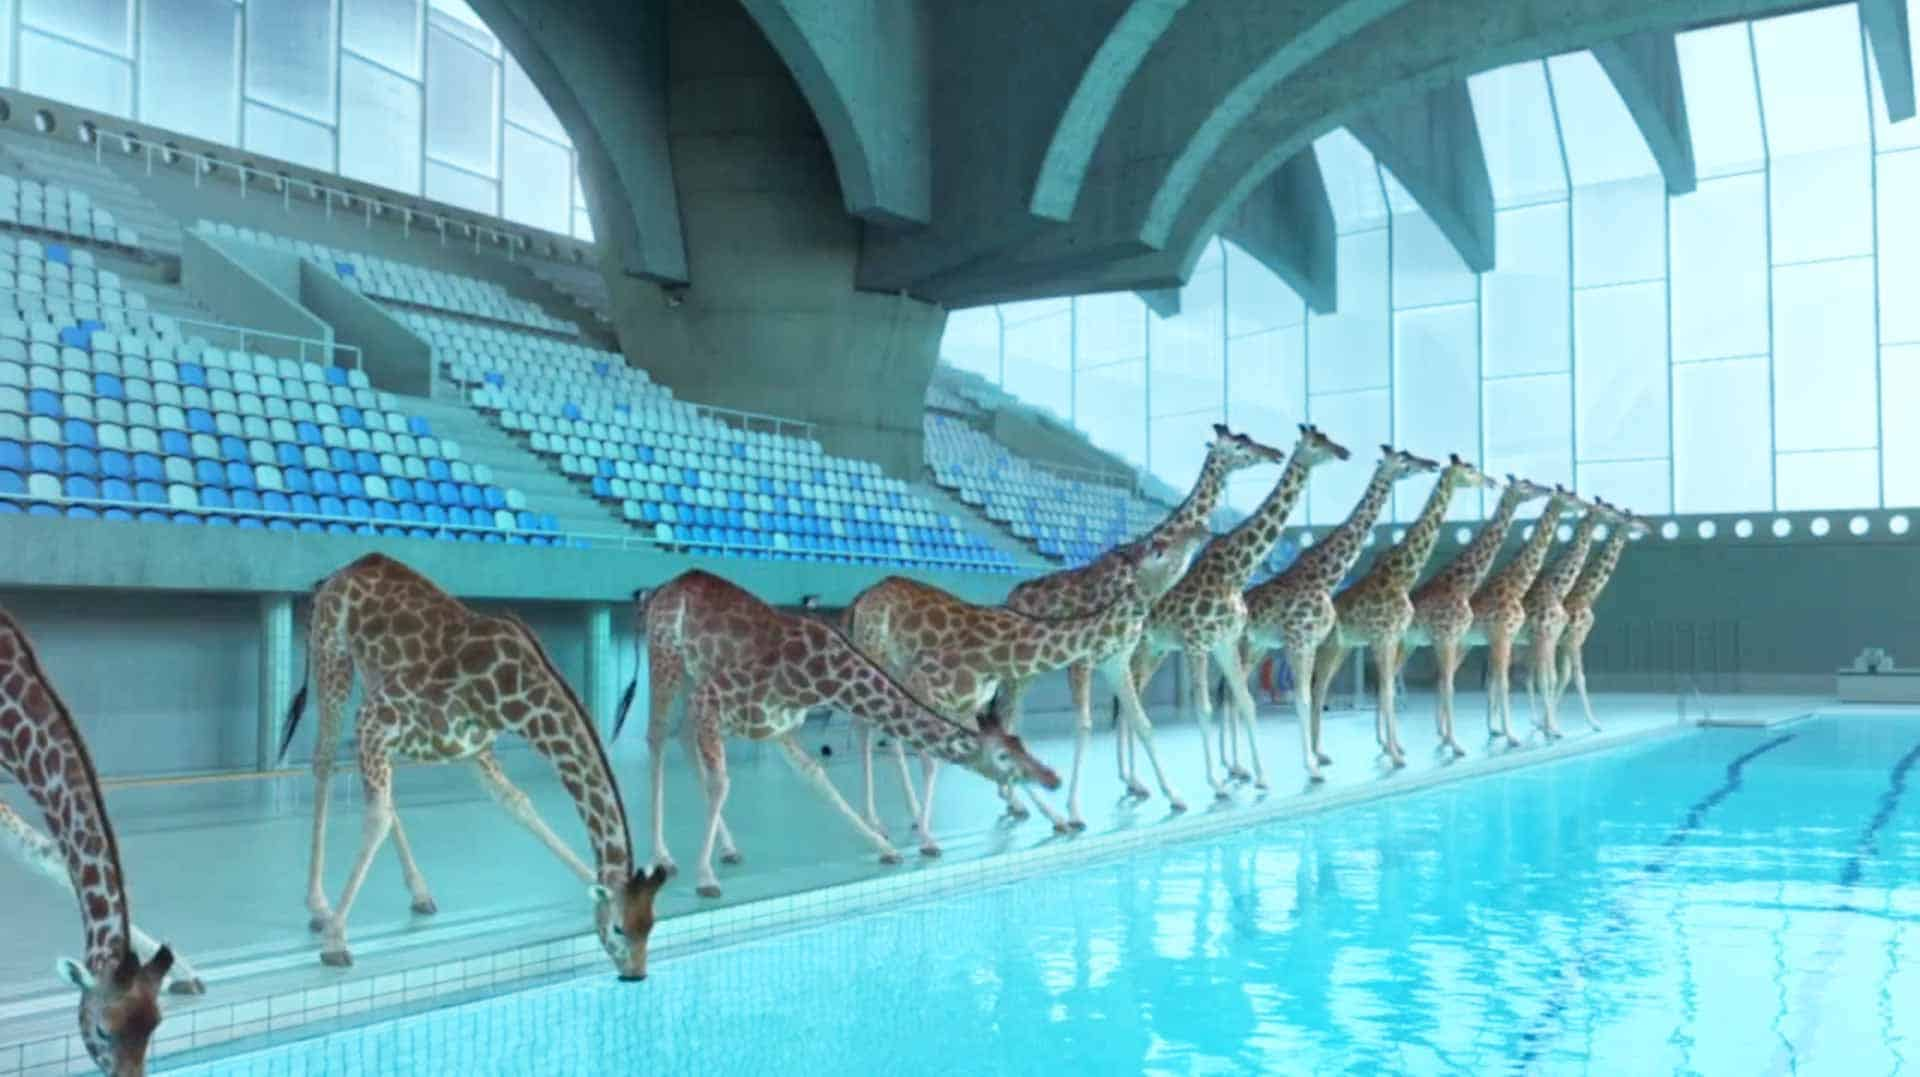 Incredible Animated Short Film Featuring Giraffes High Diving Into A Swimming Pool